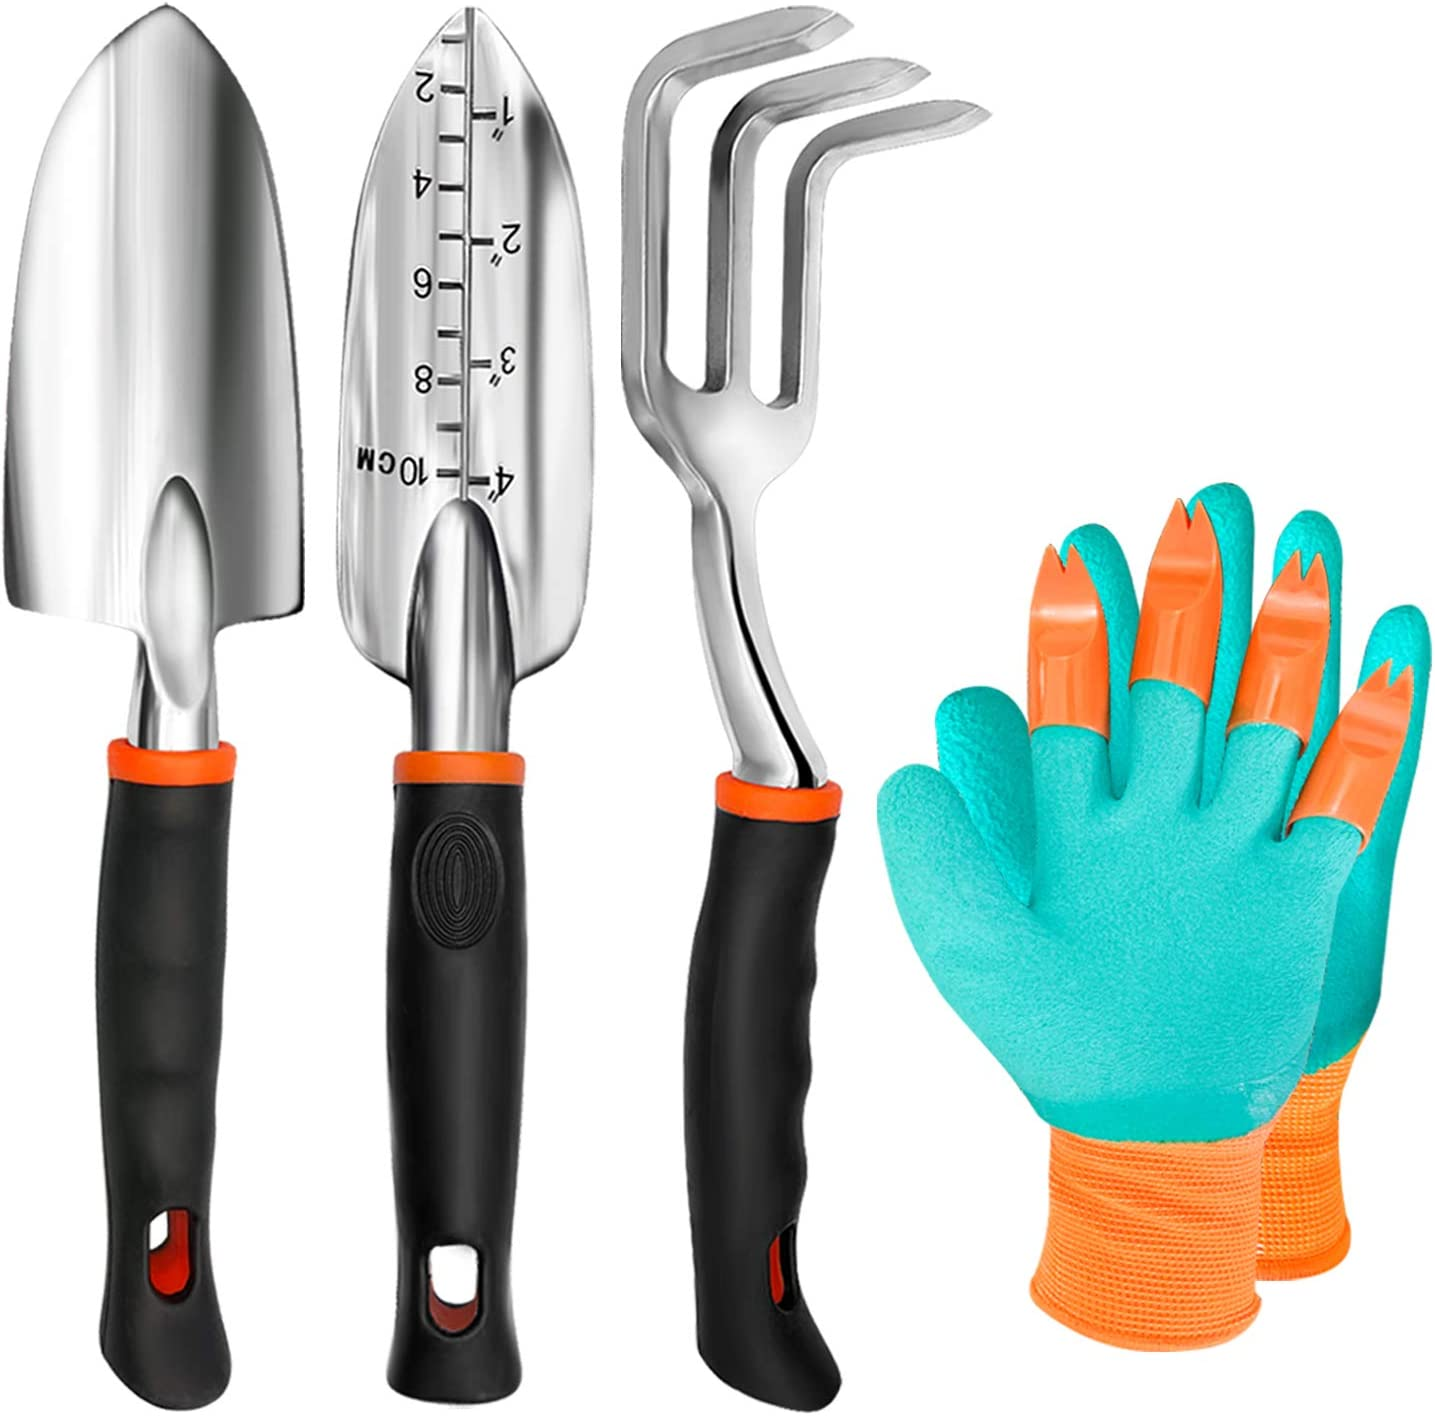 TYHJOY Gardening Tools Set, 4 Pack Heavy Duty Aluminum Garden Transplant Trowel, Cultivator Hand Rake, Shovels Tools and Gloves Set, Garden Gifts